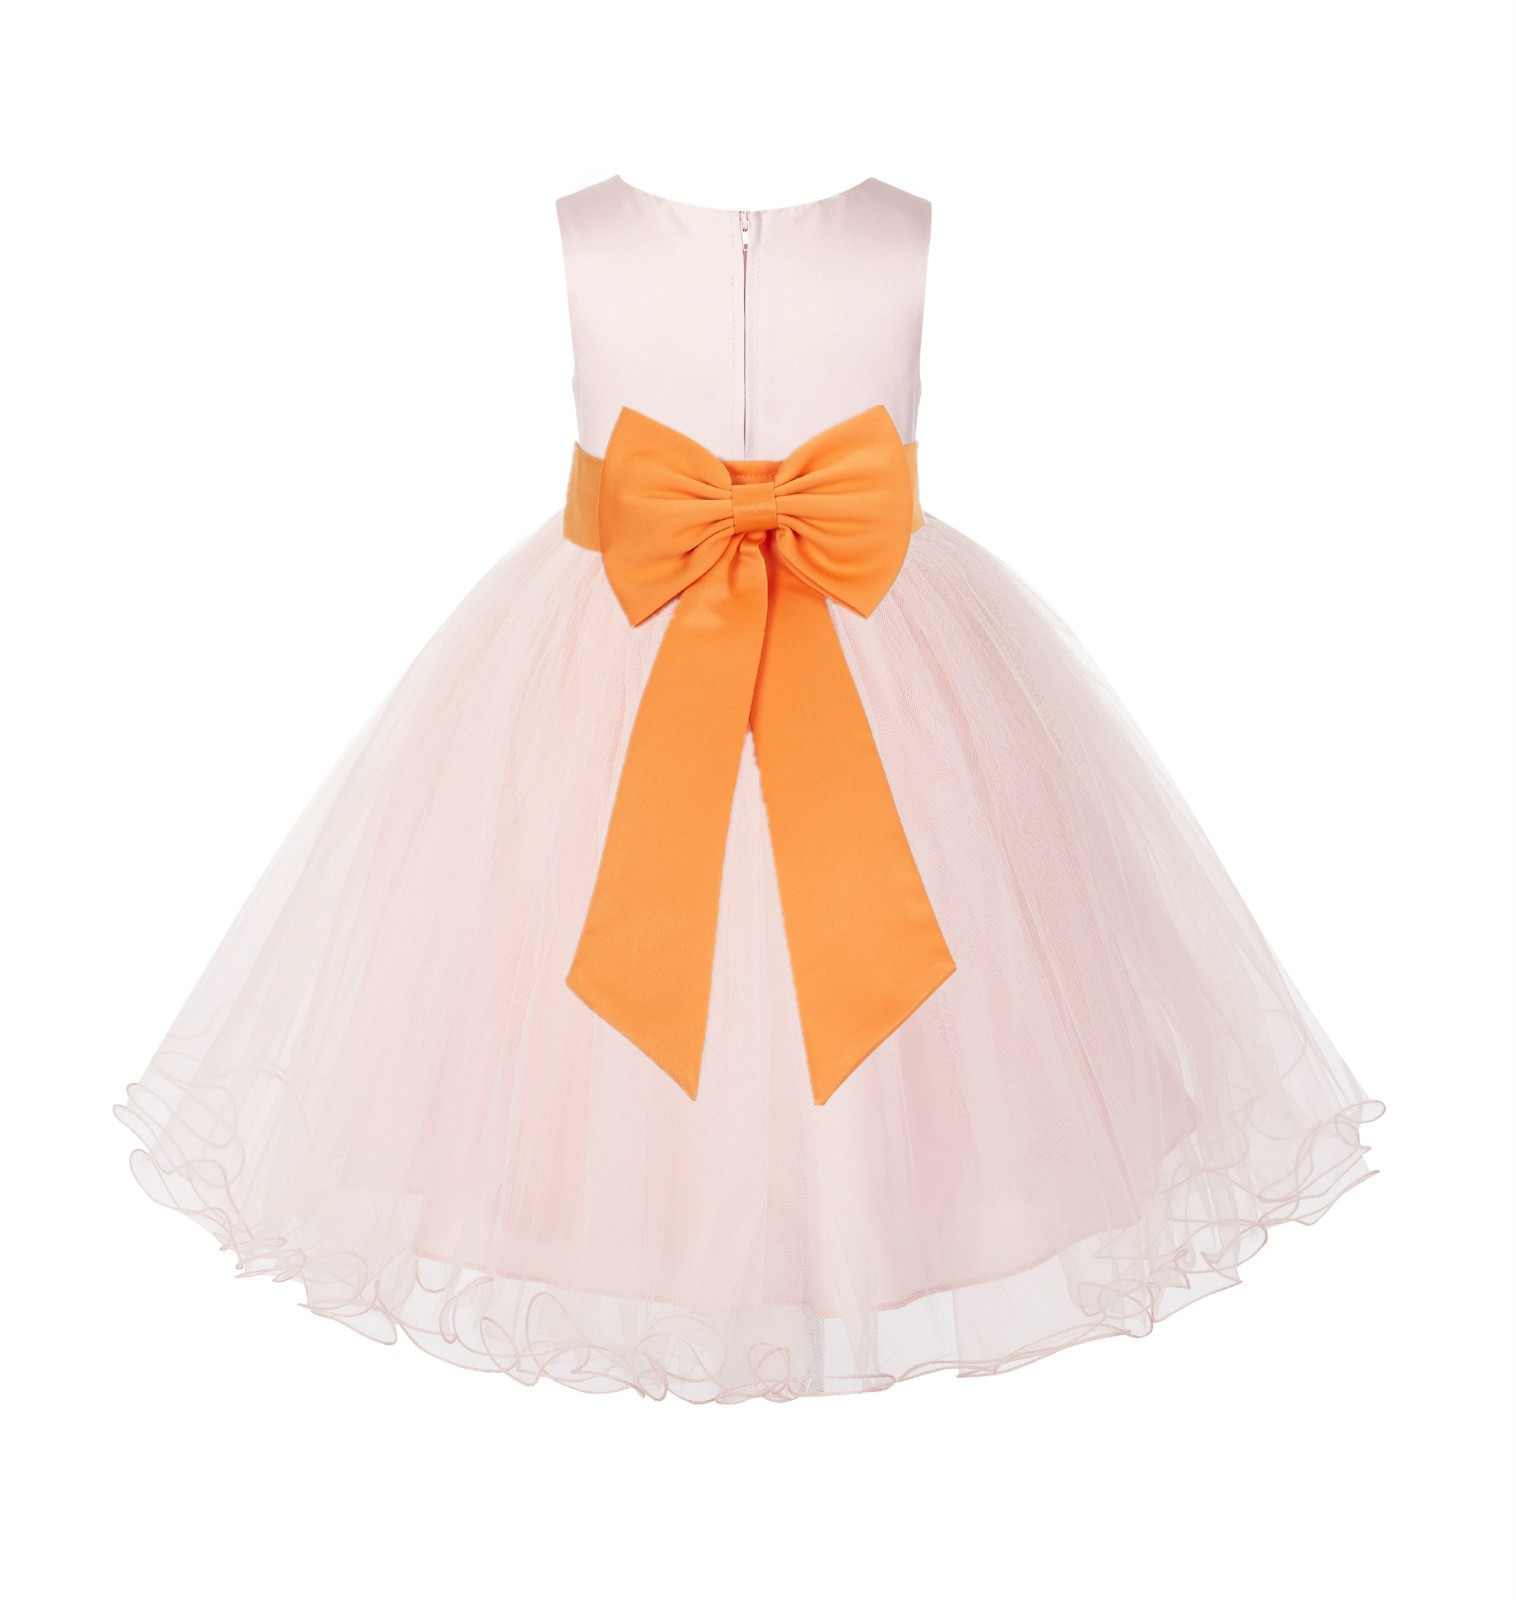 Blush PInk / Orange Tulle Rattail Edge Flower Girl Dress Wedding Bridesmaid 829T